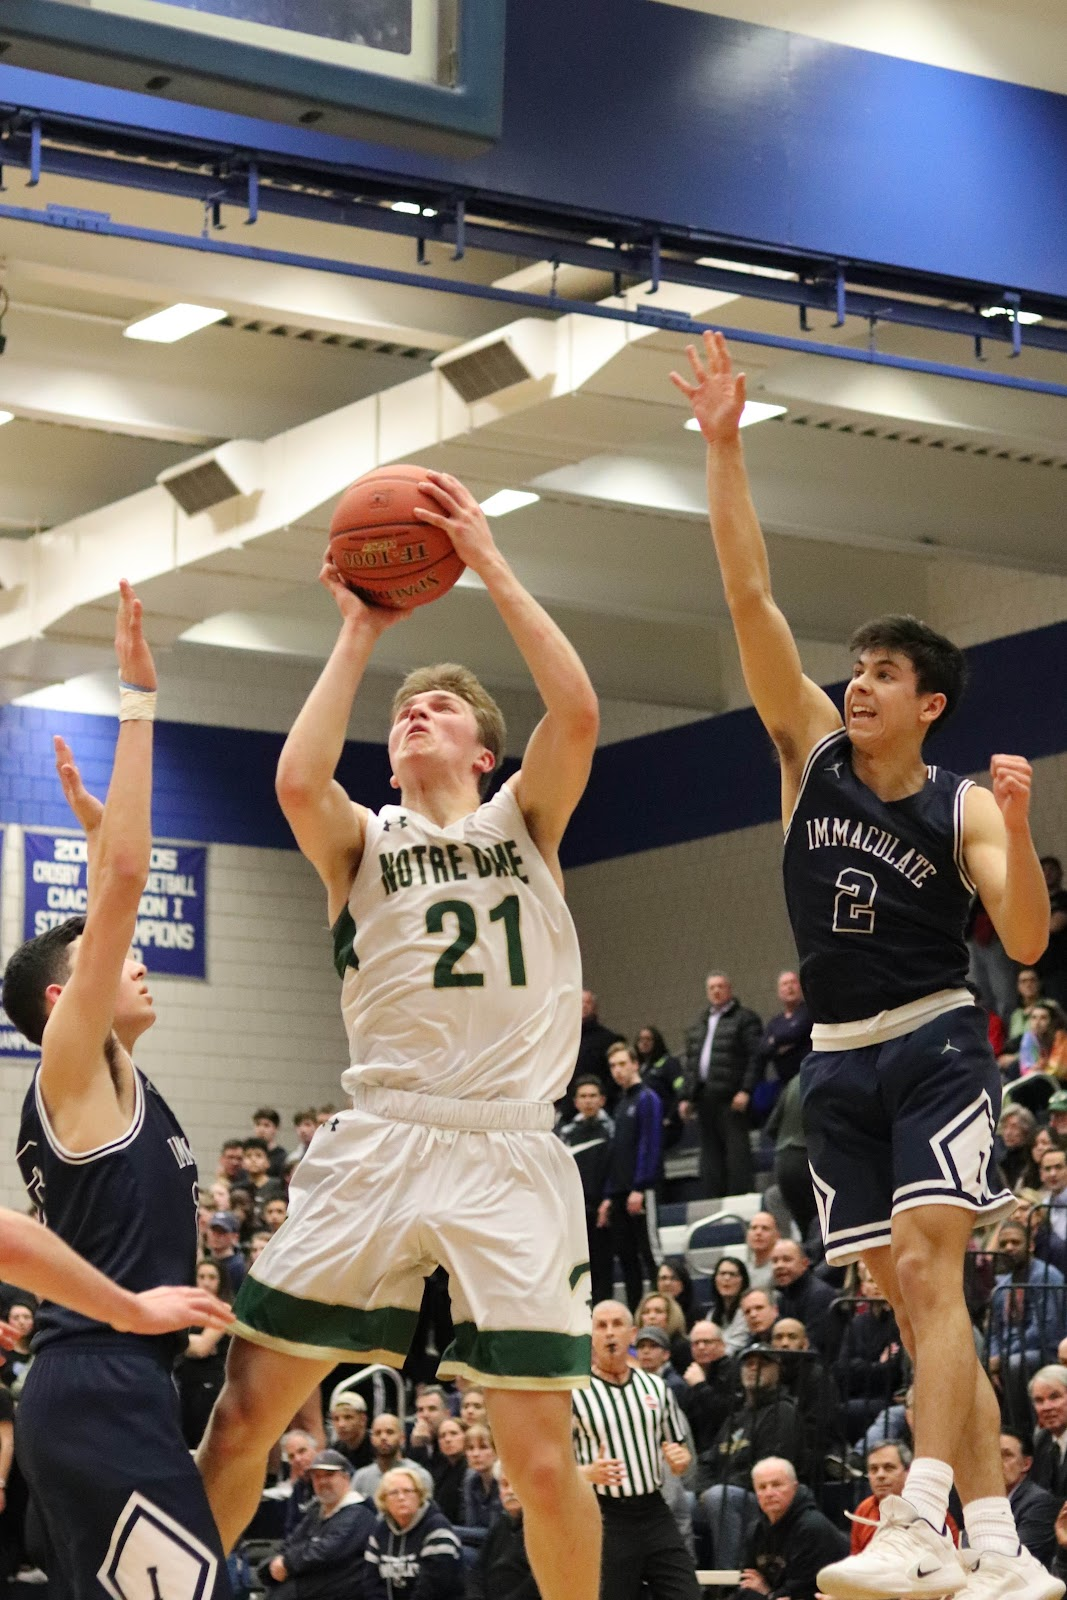 6553a2cfa577 Hoops Season Comes to Close in Quarterfinal Loss to Immaculate ...